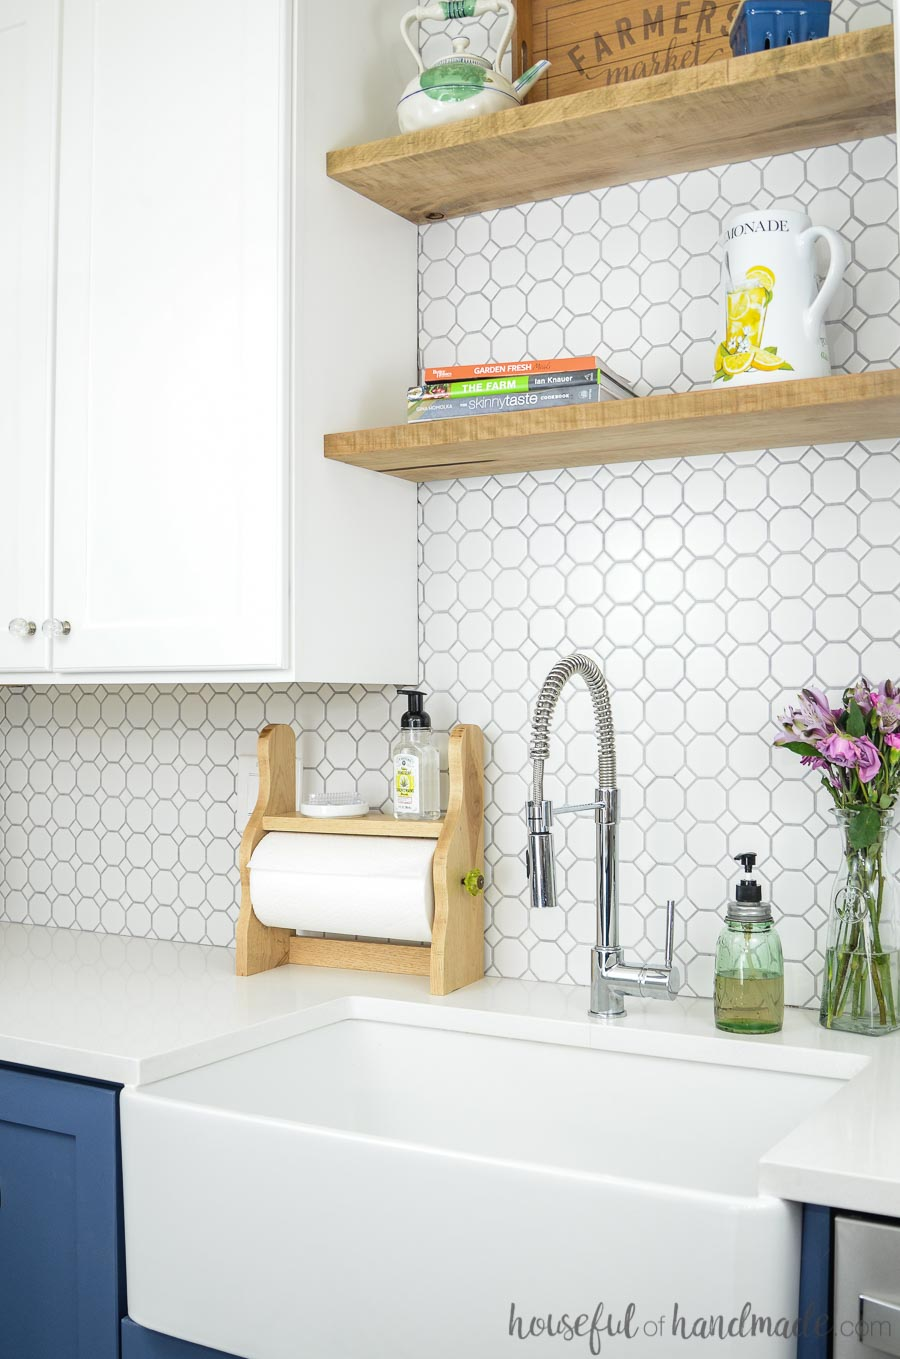 White kitchen with open shelves and white octagon tile backsplash. Beautiful farmhouse paper towel holder with shelf behind apron front sink. Housefulofhandmade.com